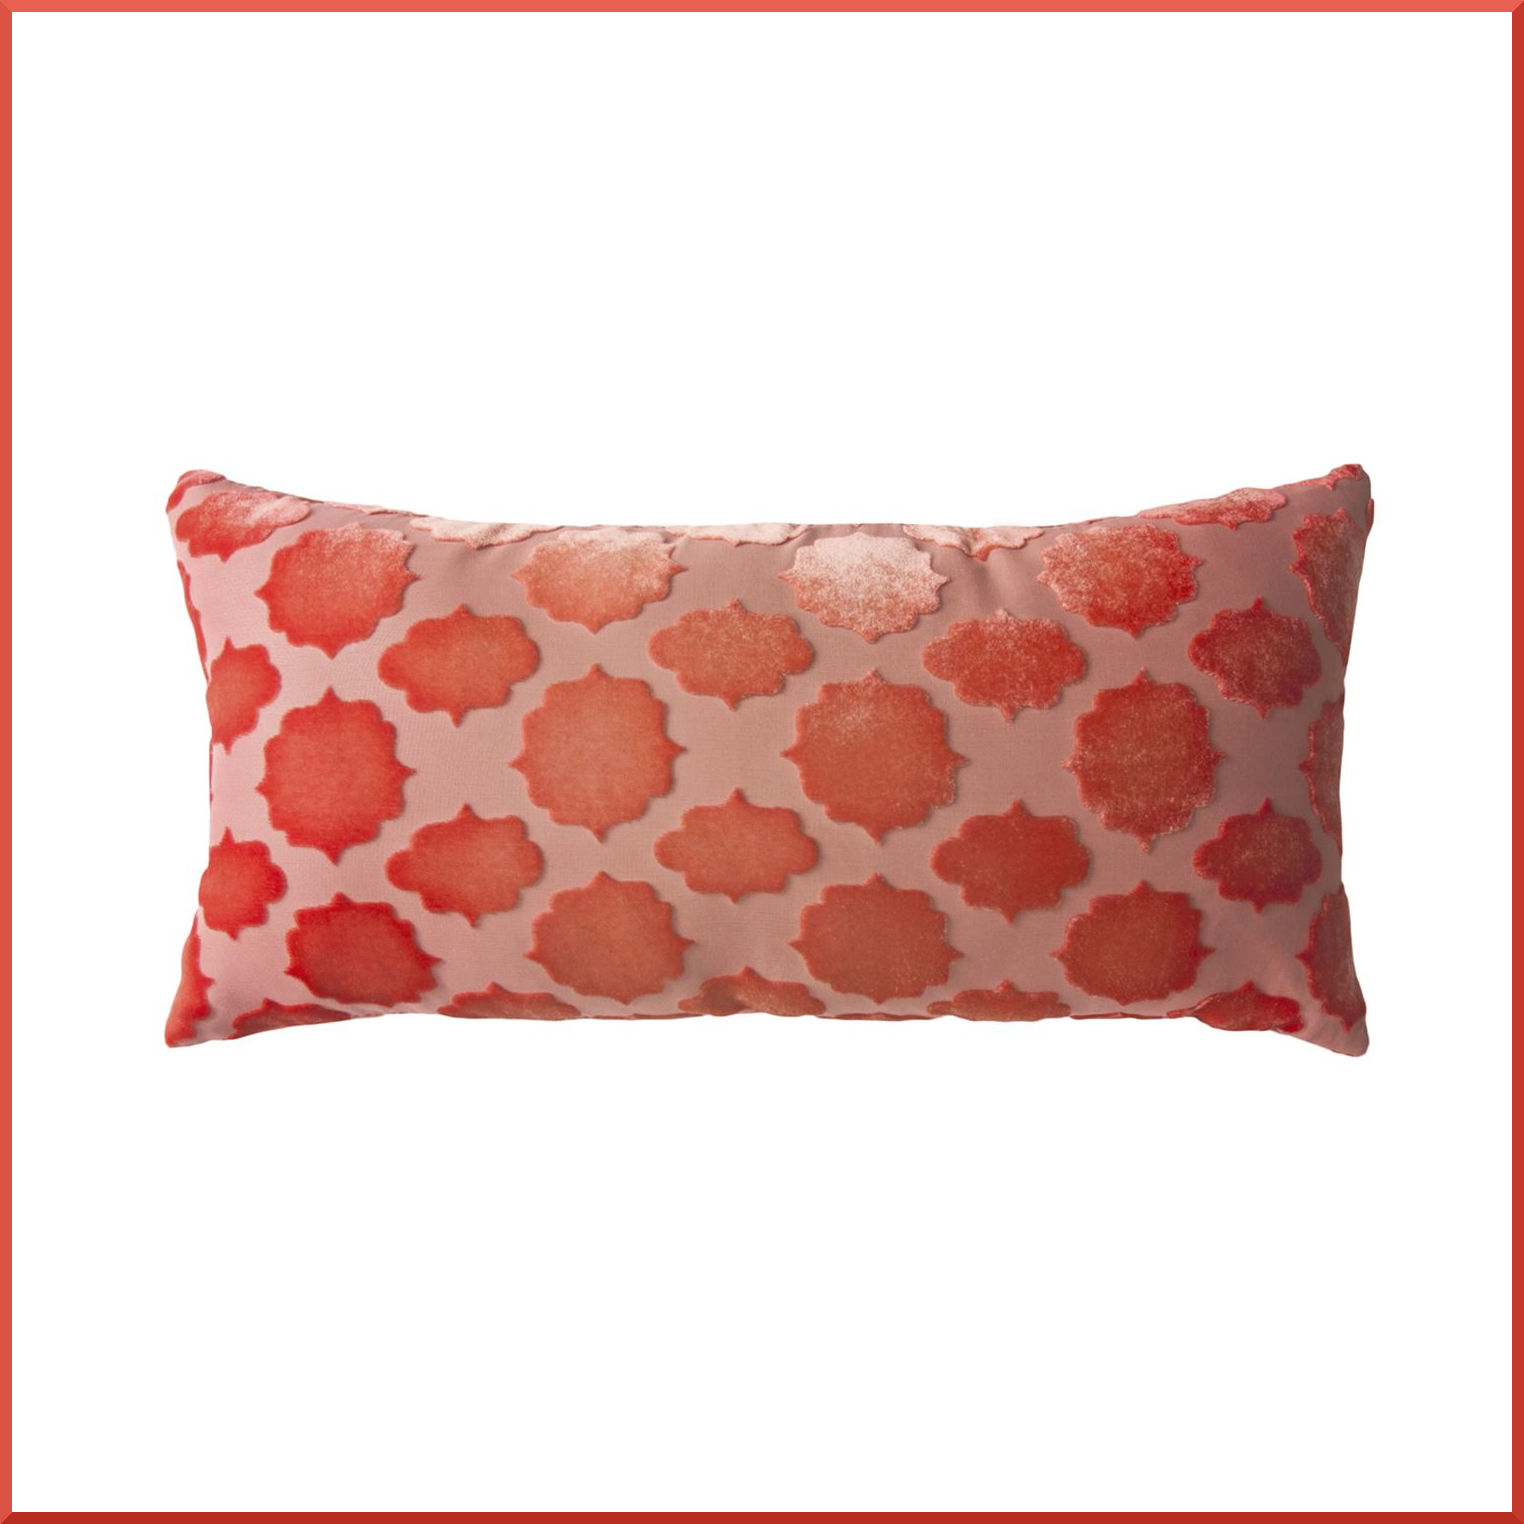 Kevin OBrien Studio Mod Fretwork Velvet Dec Pillow